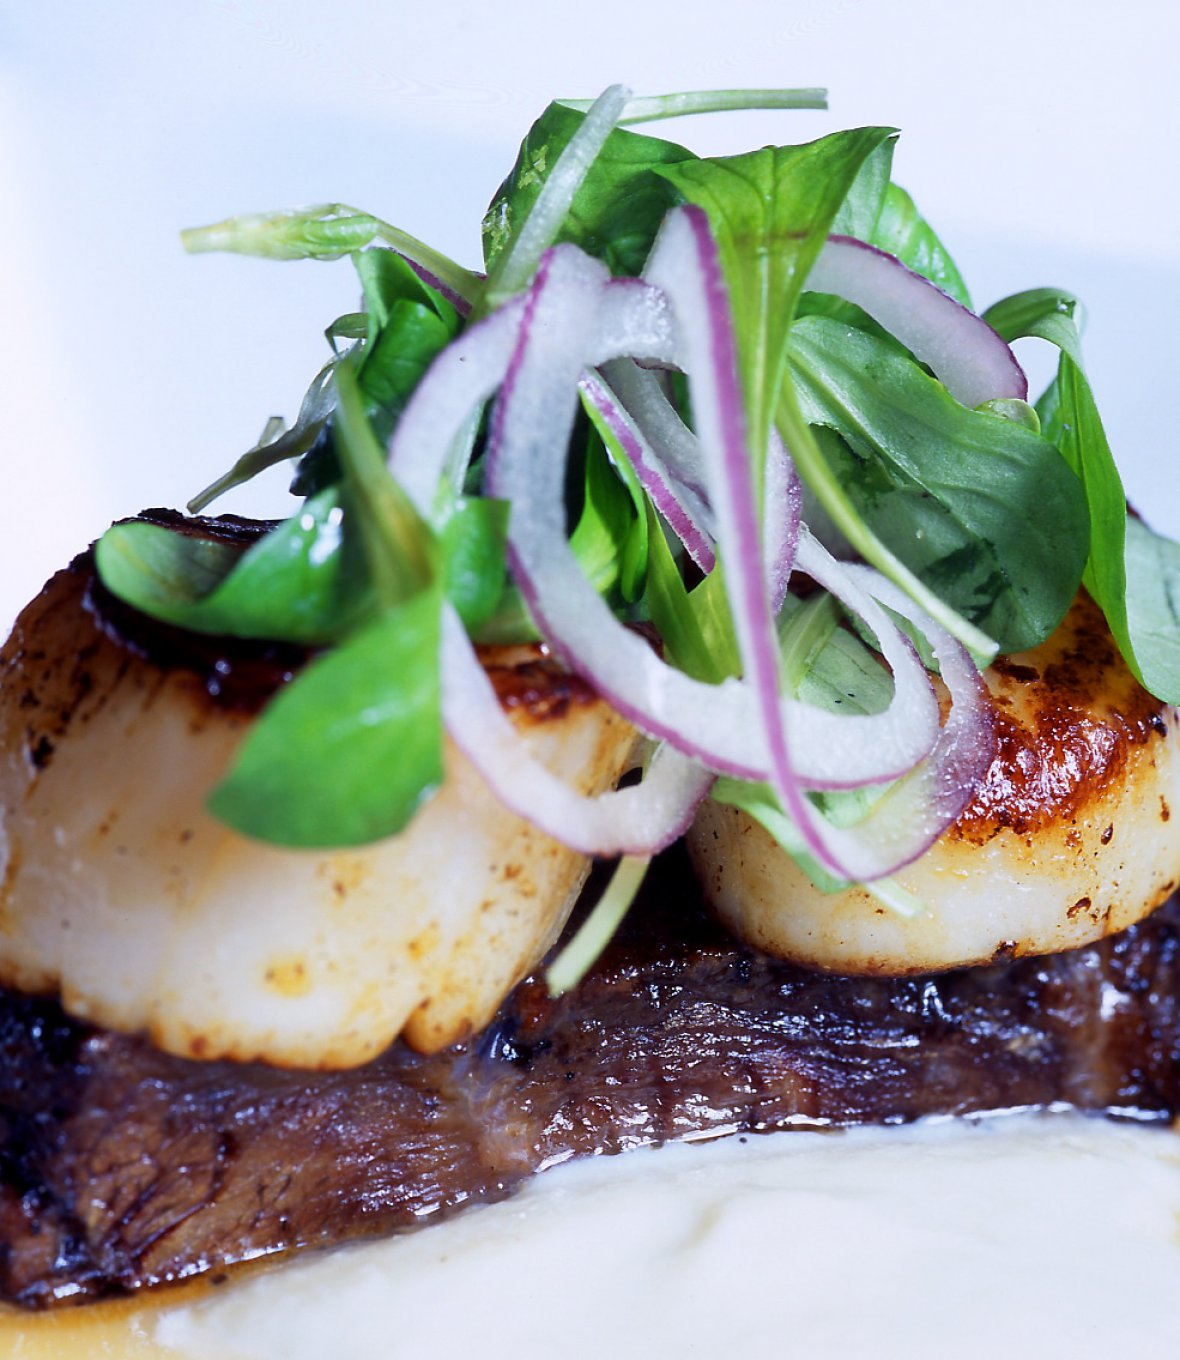 An order of scallops overtop of braised shortrib served at Todd English's Bluezoo at the Walt Disney World Dolphin